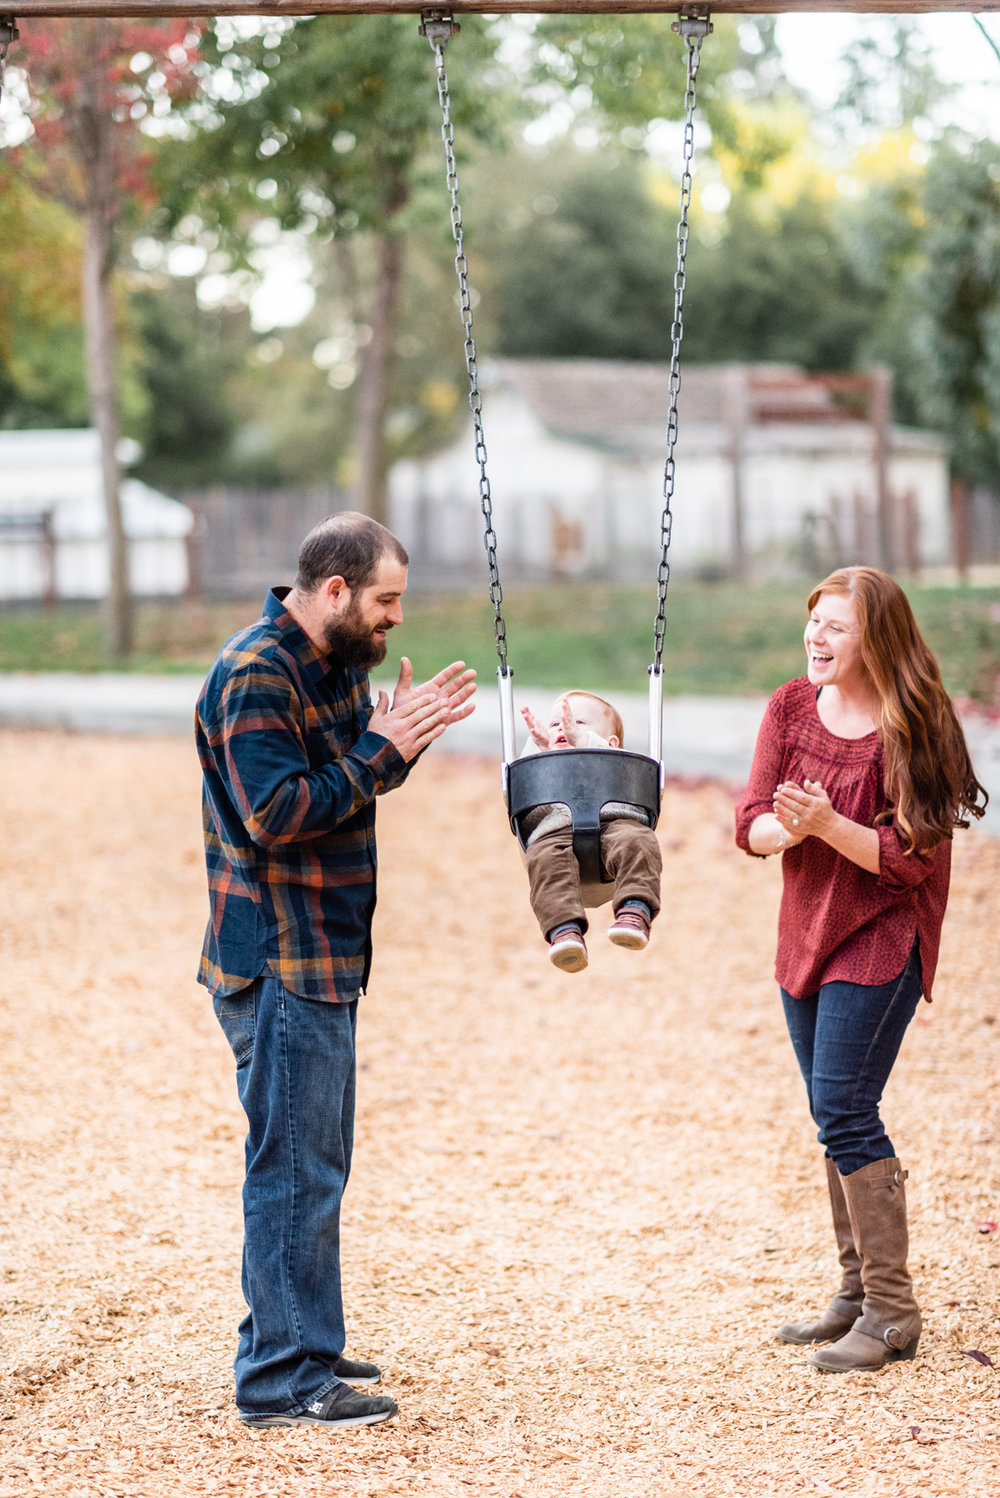 FamilylLifestyle session at Hap Magee Park in Danville, CA.